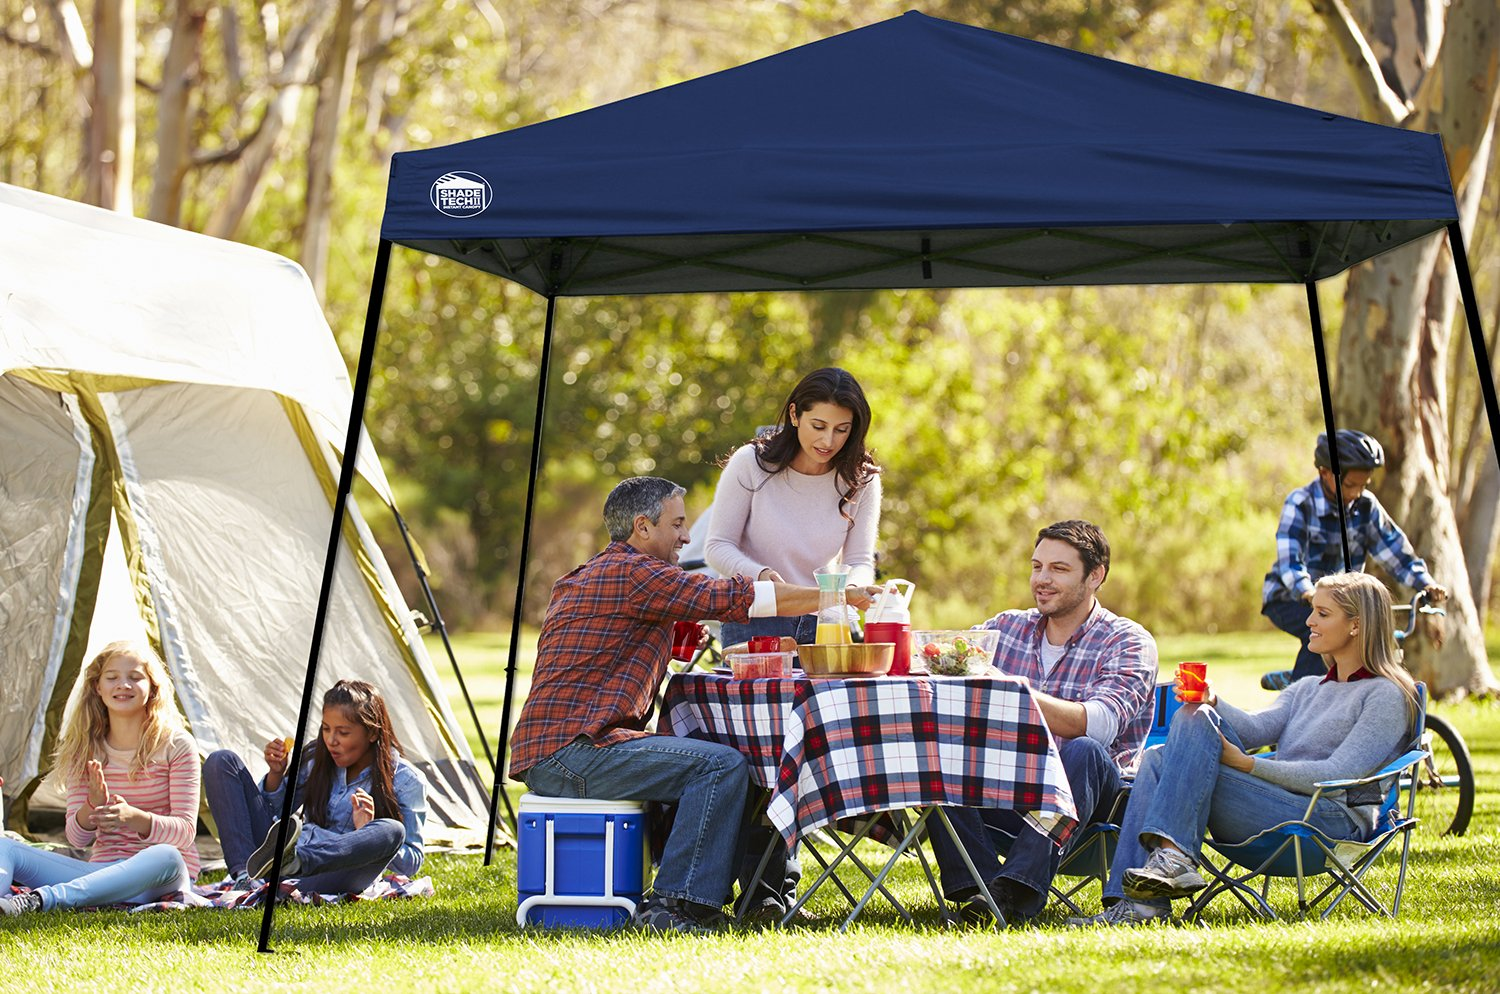 Amazon.com Shade Tech II ST64 10u0027x10u0027 Instant Canopy - Midnight Blue Sports u0026 Outdoors & Amazon.com: Shade Tech II ST64 10u0027x10u0027 Instant Canopy - Midnight ...